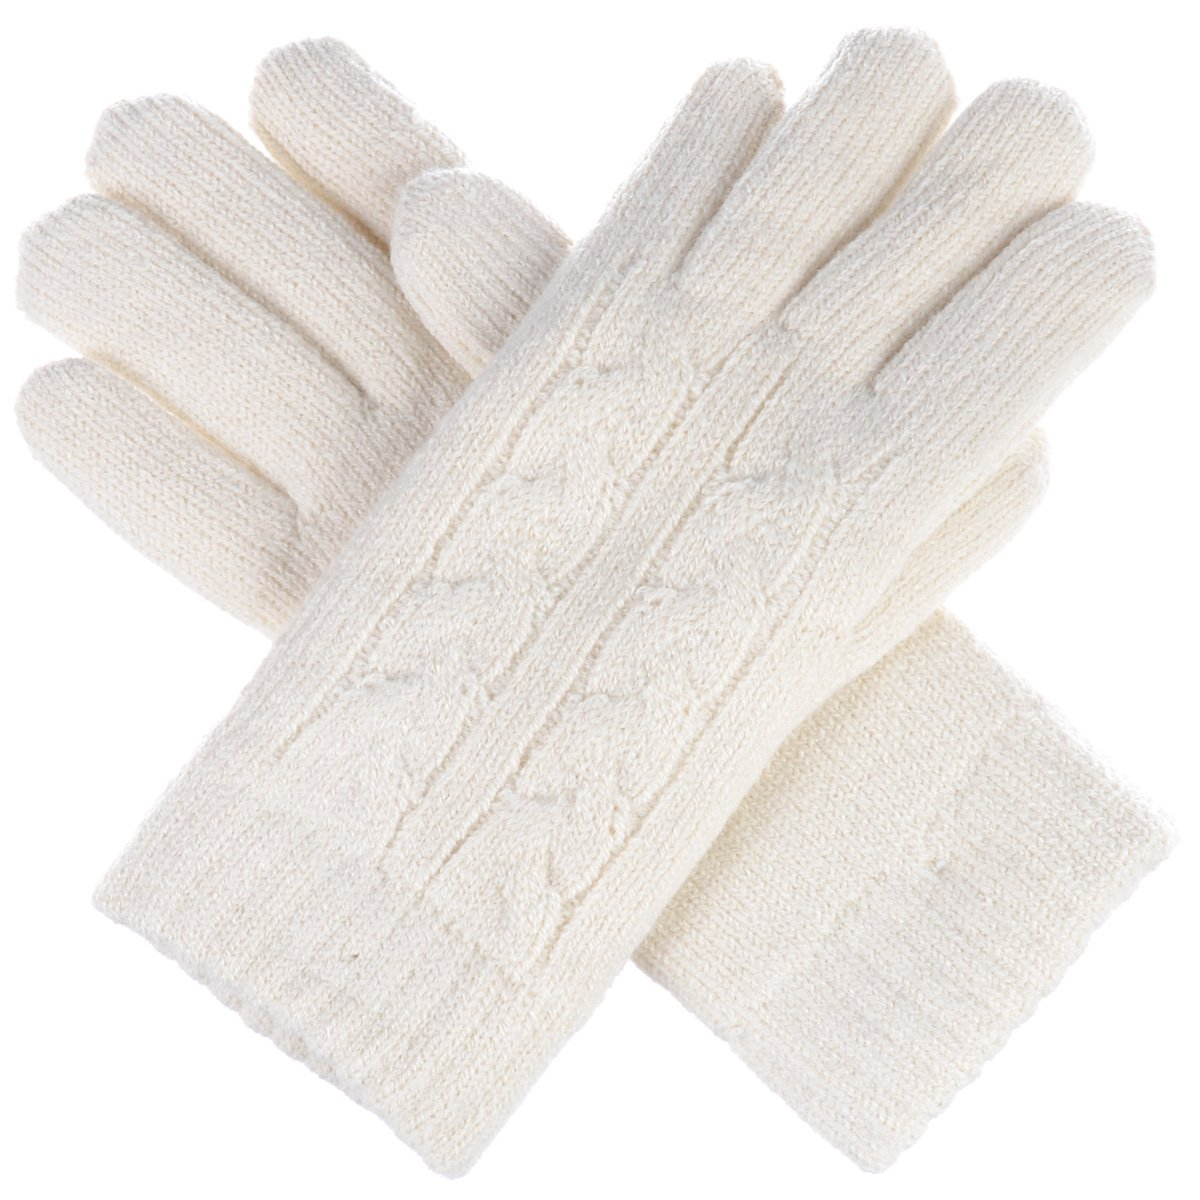 Womens Cold Winter Timeless Cable Knit Gloves, Warm Plush Faux Fur Fleece Lined (Ivory Double Cable)